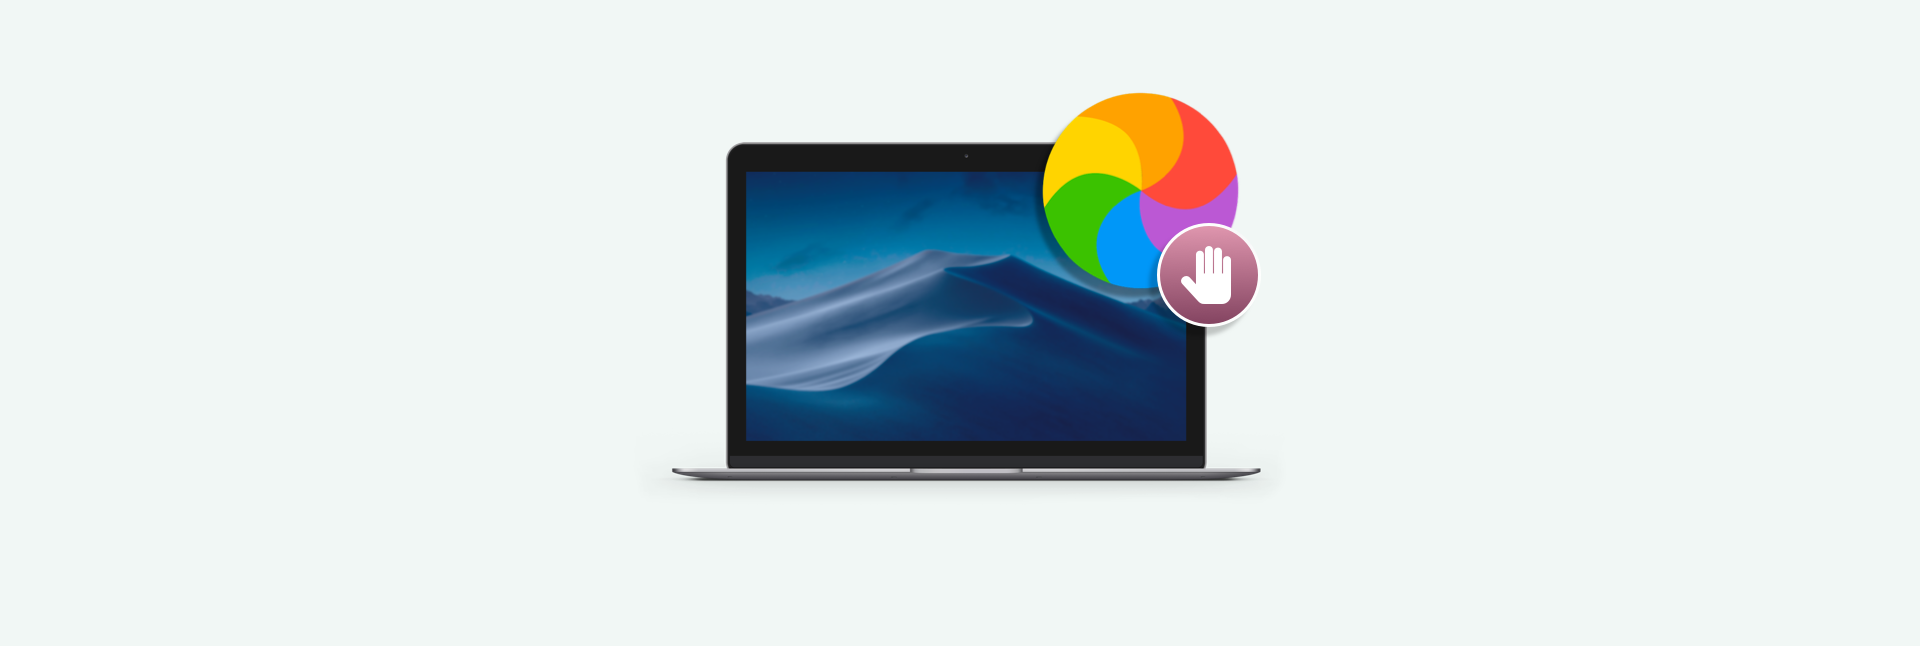 How to stop the spinning color wheel on a Mac